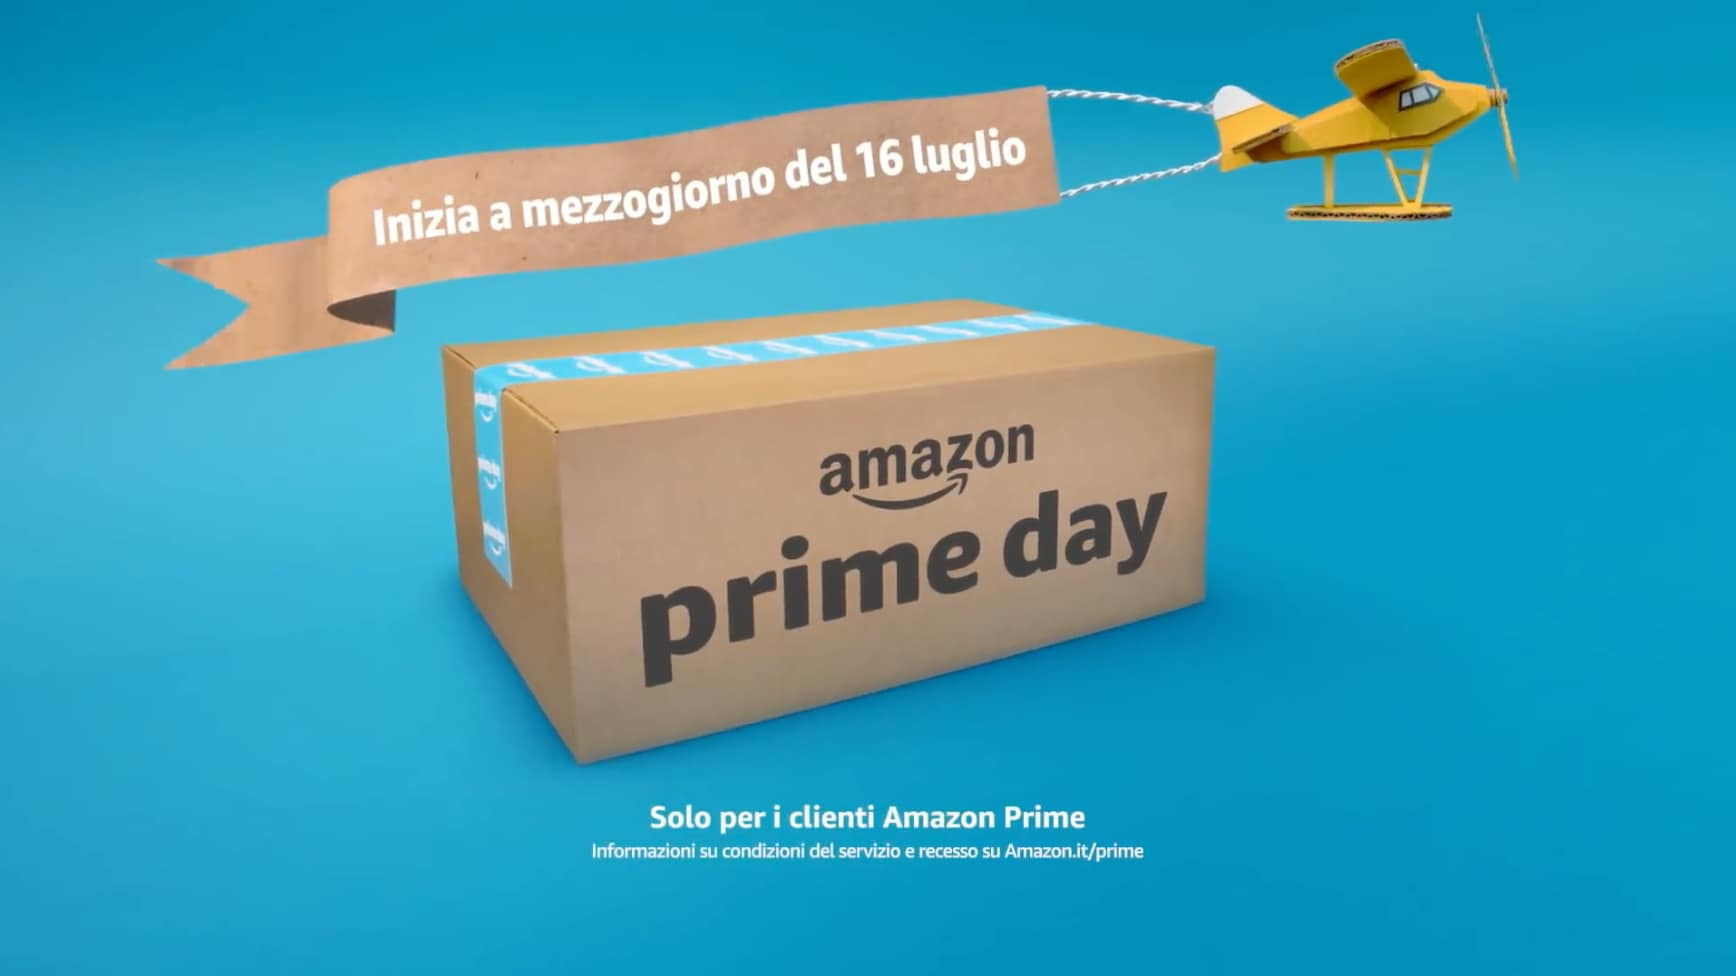 amazon prime day - photo #3